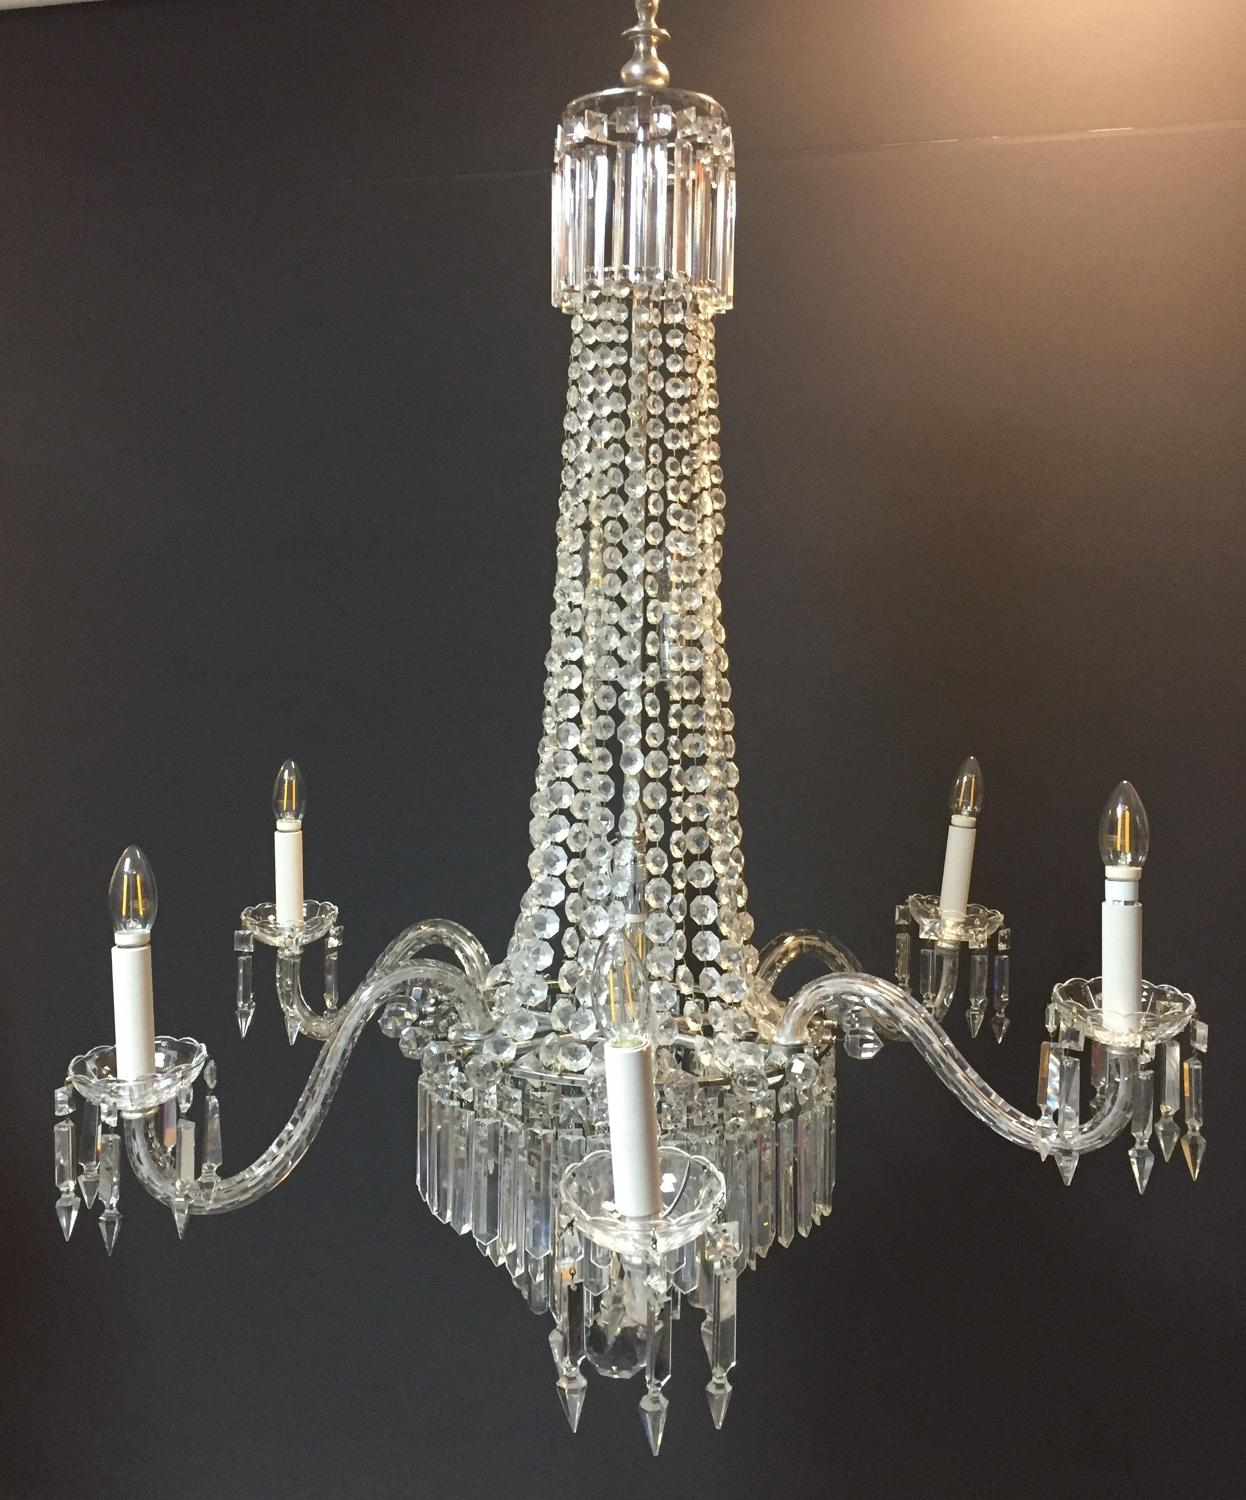 A 19th century tent and waterfall chandelier